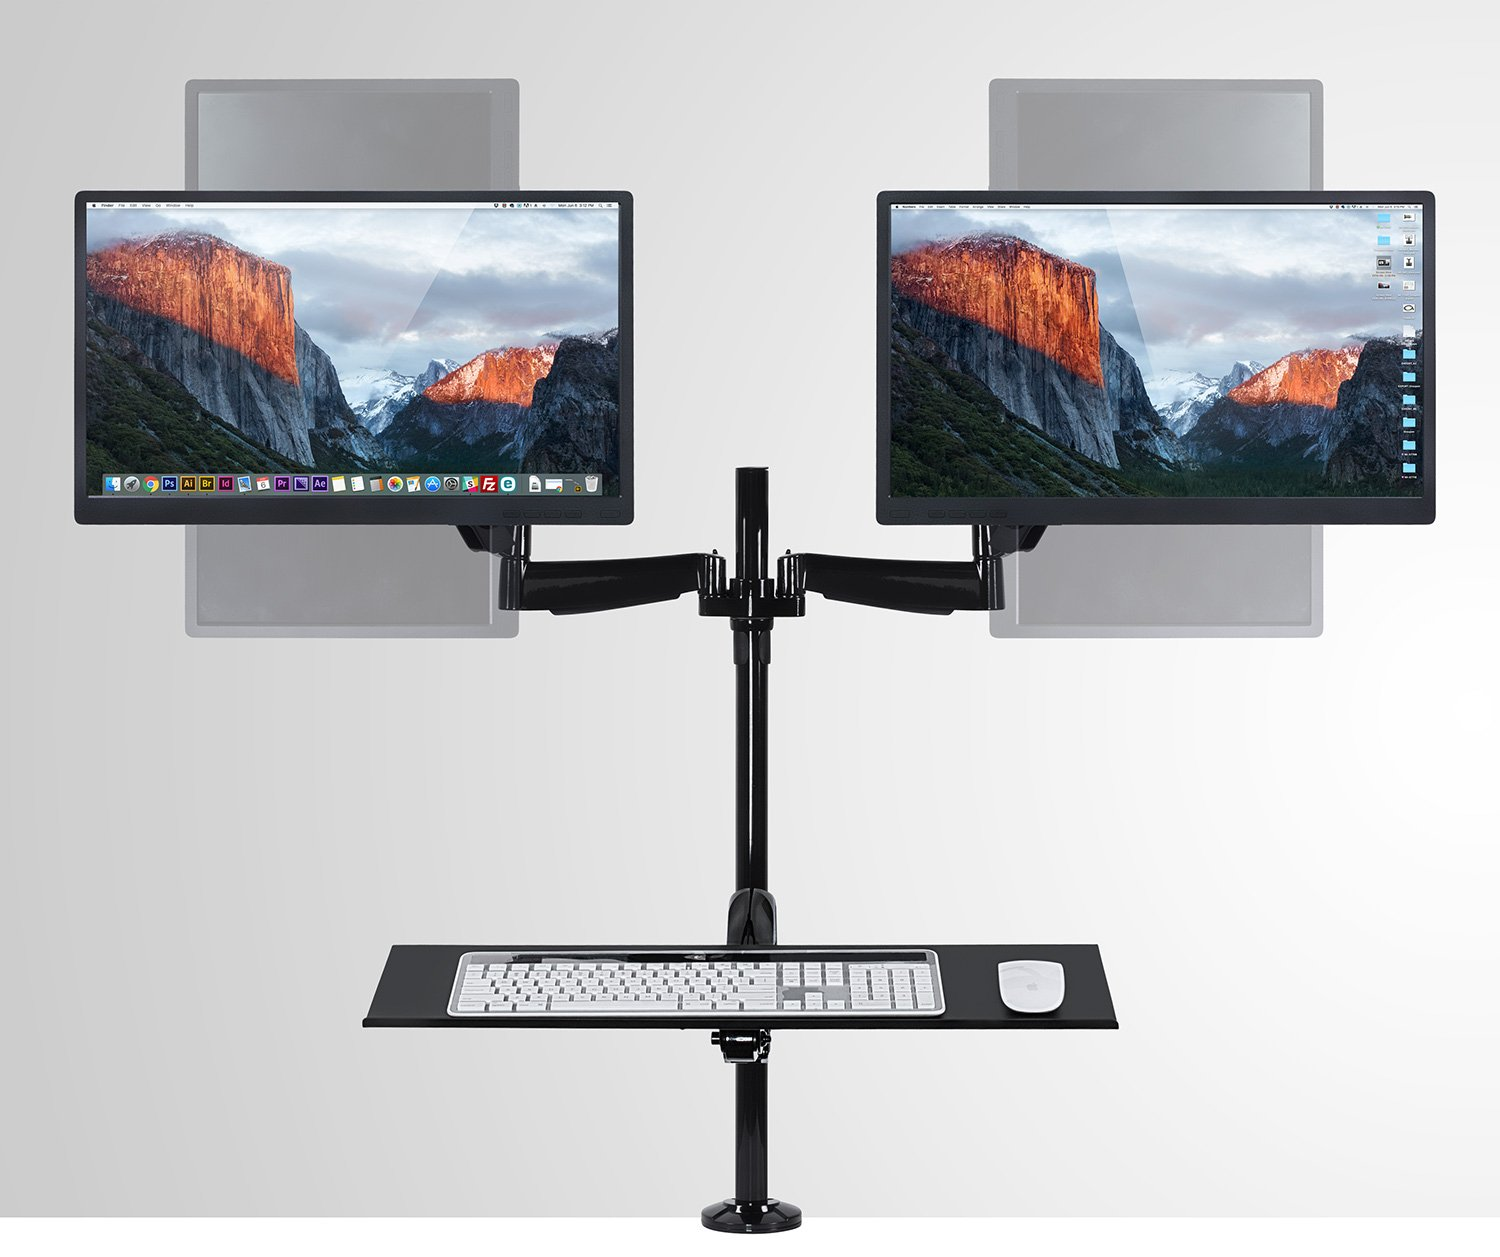 22 23 Black Mount-It C Clamp Base Gas Spring Arm 27 Inch Monitors MI-7922 24 Height Adjustable Standing Desk Dual Monitor and Keyboard Mount Ergonomic Sit-Stand Desk Mount Workstation